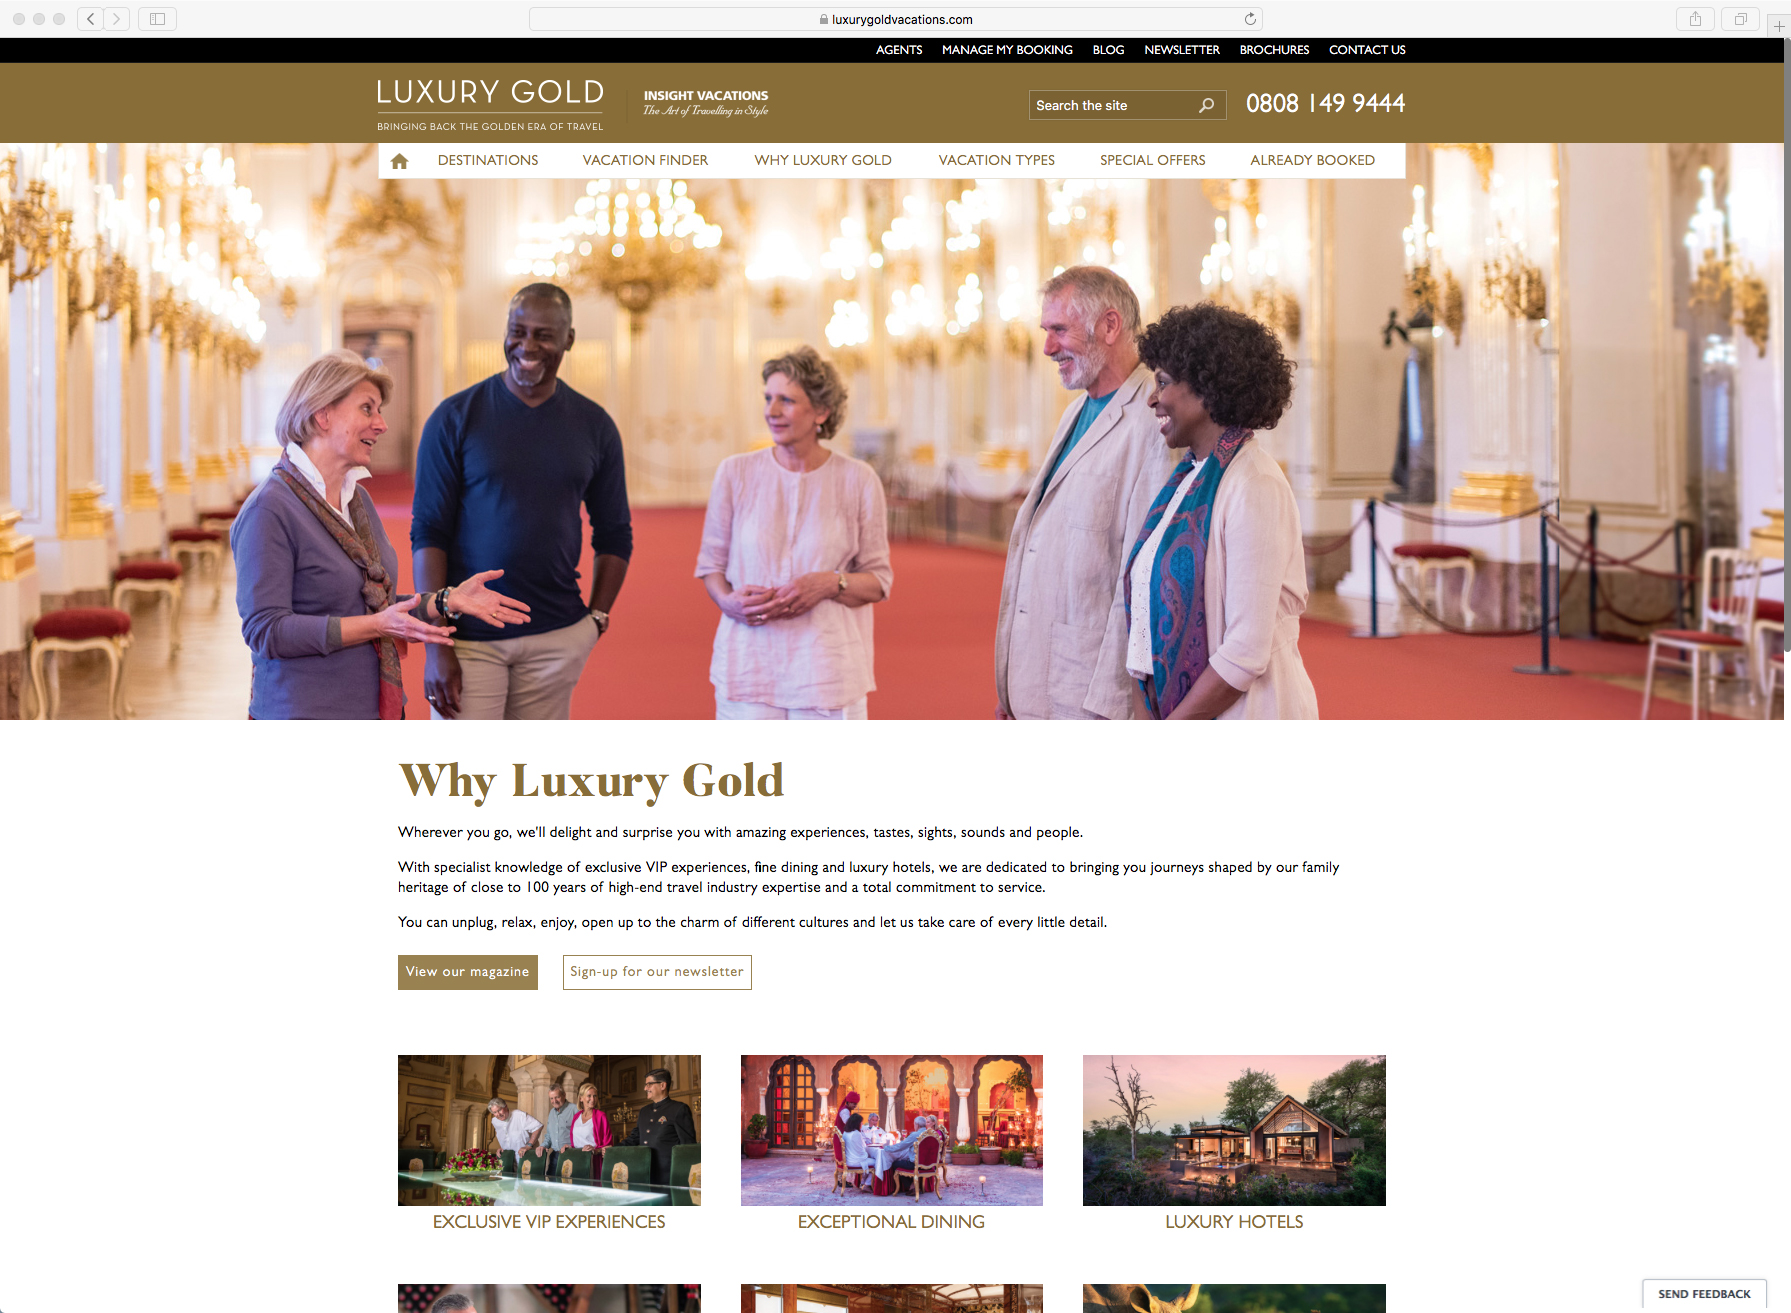 Luxury-Gold-Website-4.jpg